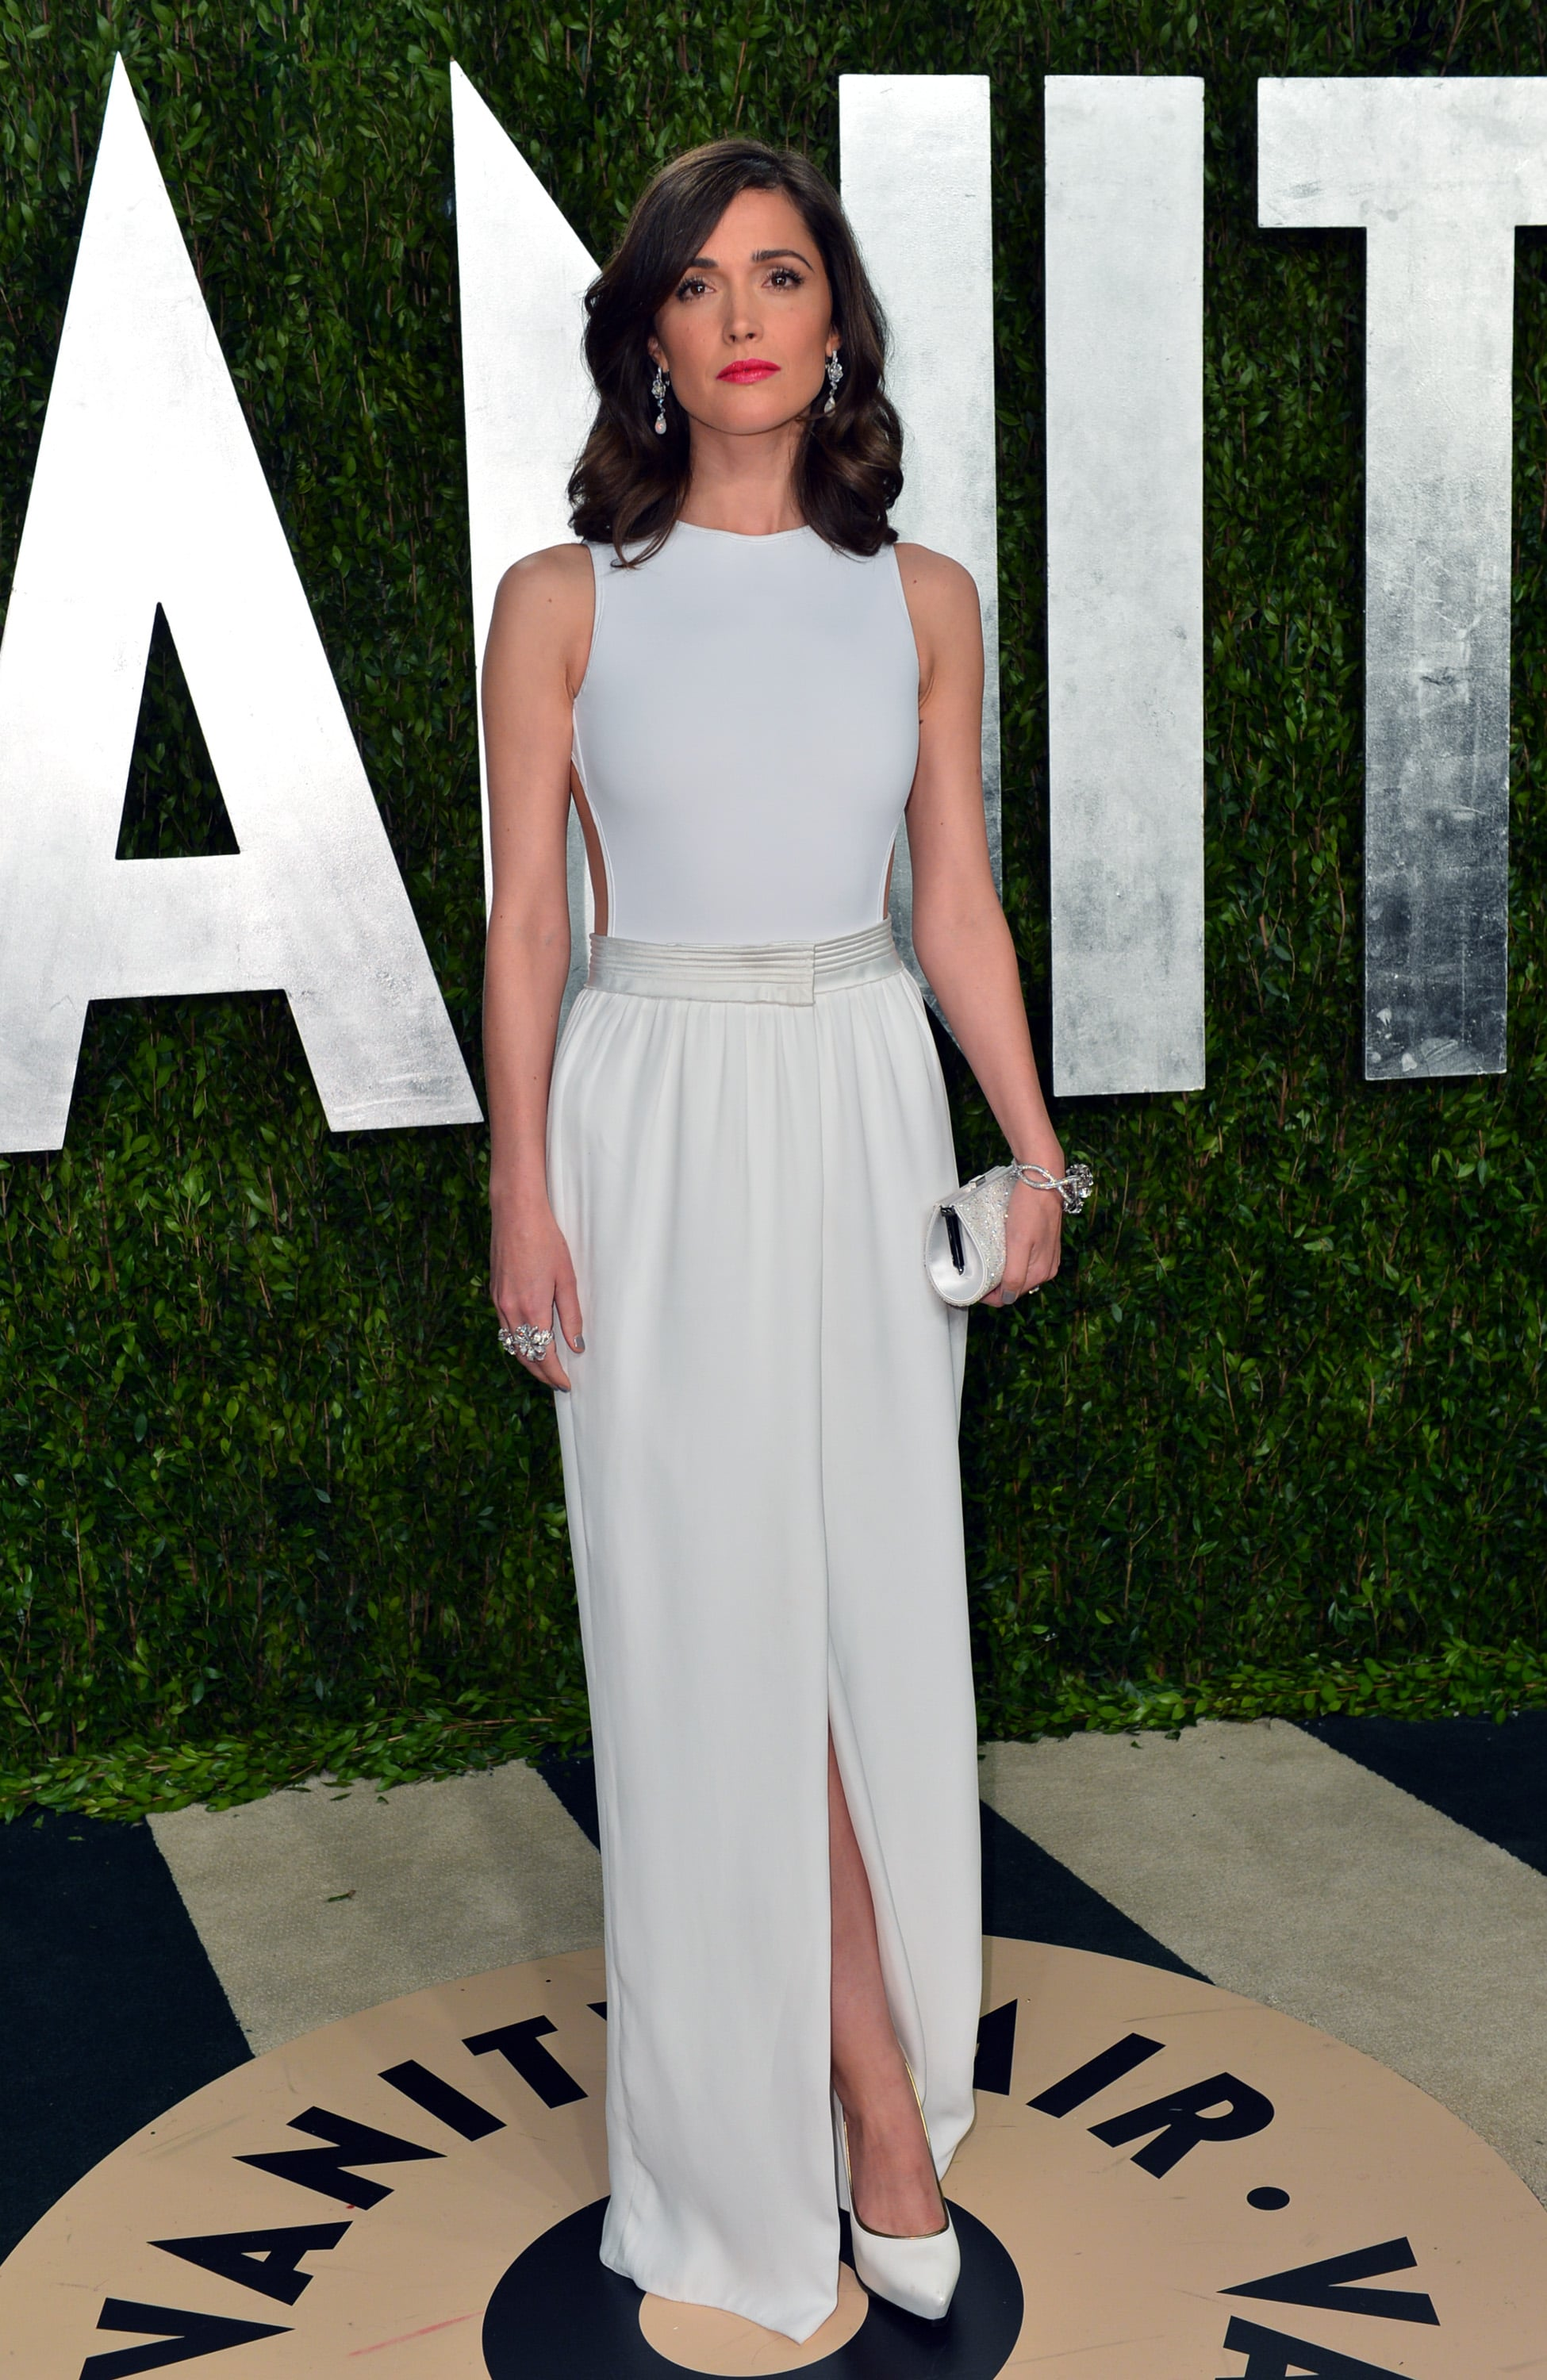 Rose Byrne arrived at the Vanity Fair Oscar party on Sunday night.